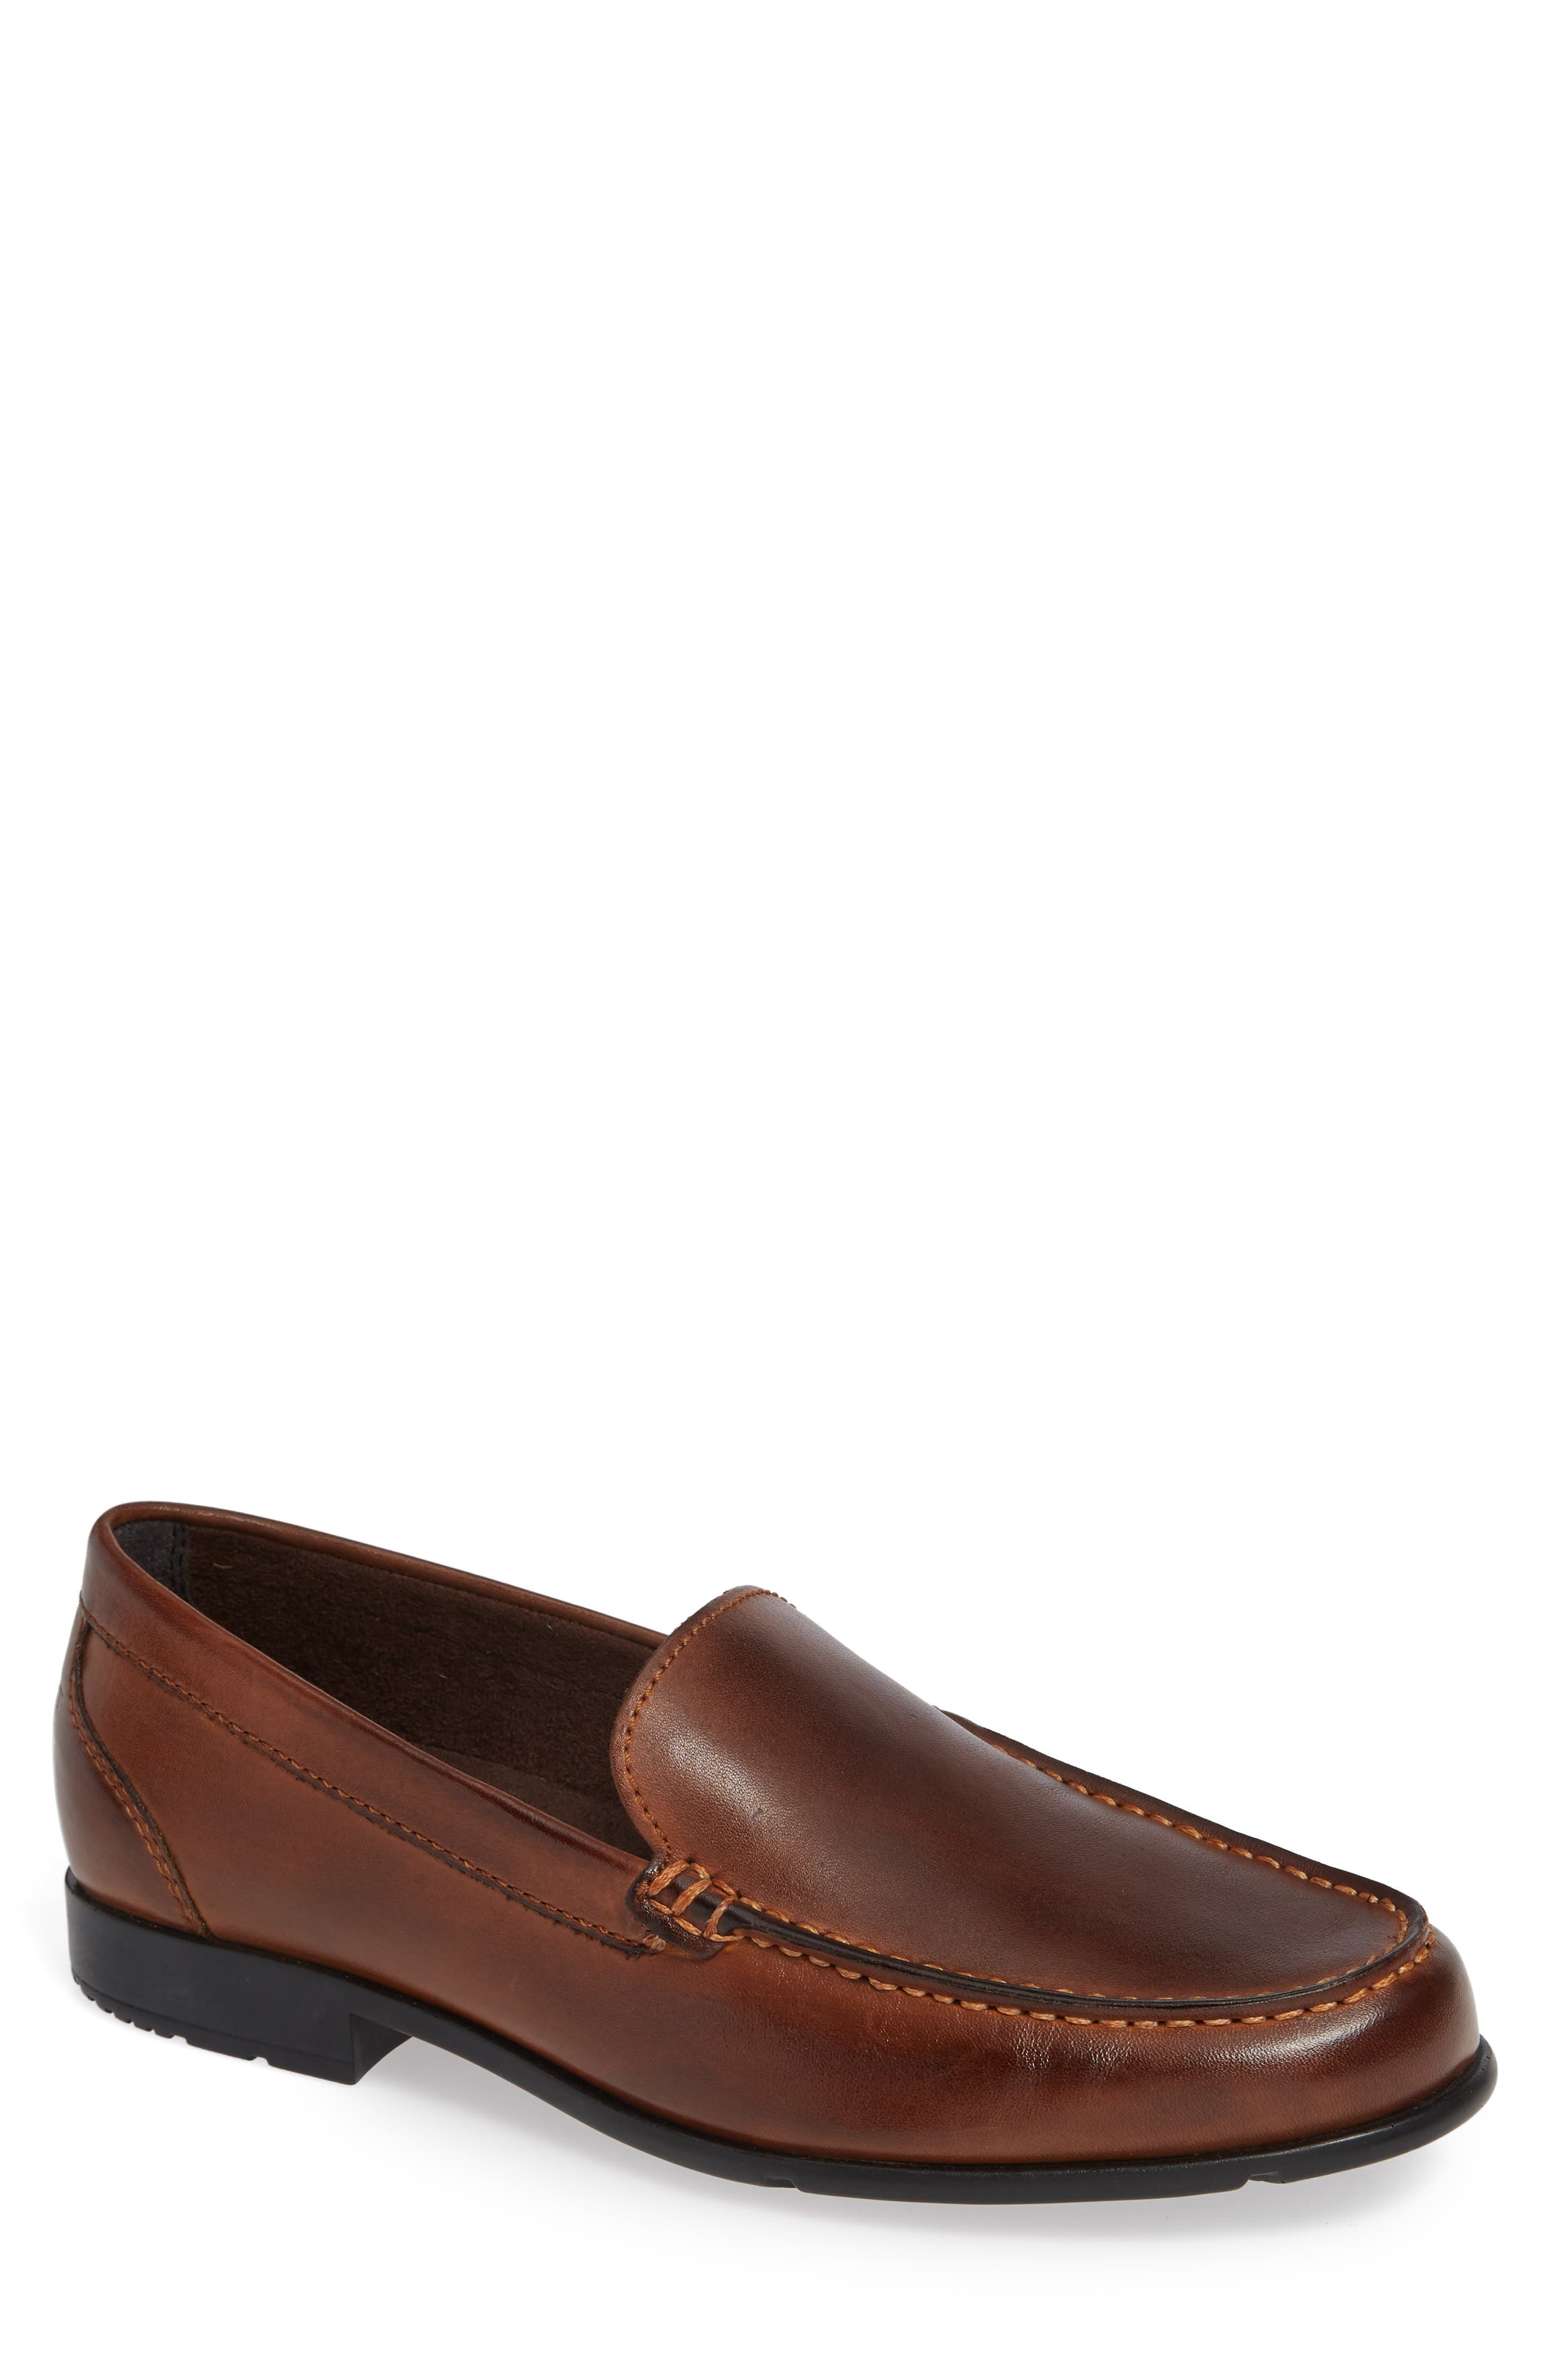 Classic Venetian Loafer,                             Main thumbnail 1, color,                             DARK BROWN LEATHER